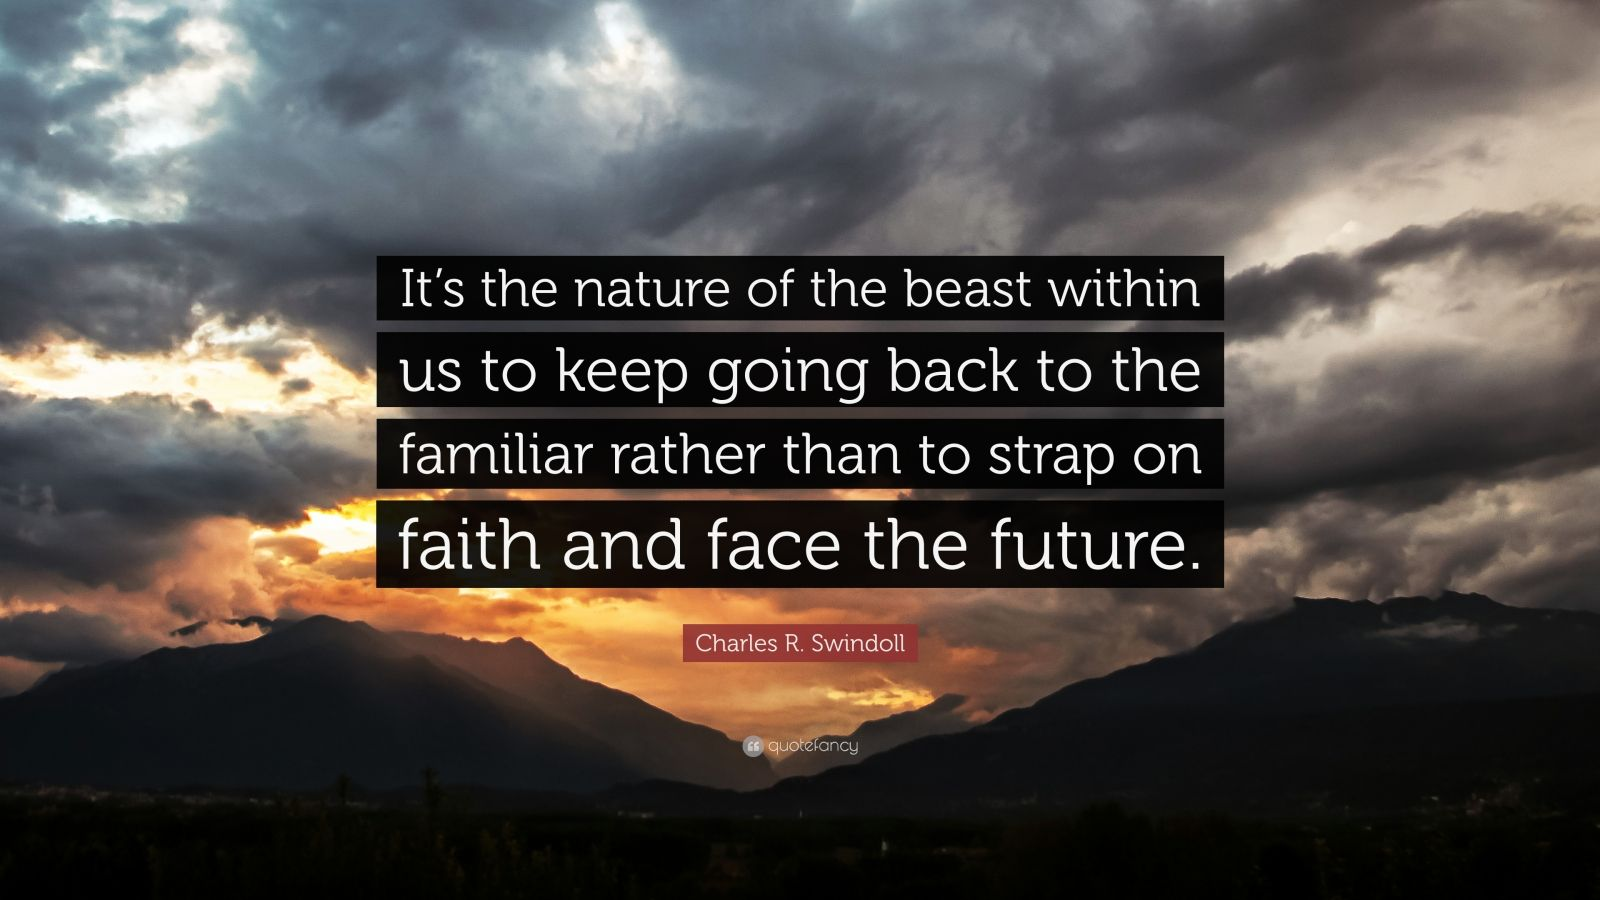 """Charles R. Swindoll Quote: """"It's the nature of the beast within us to keep going back to the familiar rather than to strap on faith and face the future."""""""